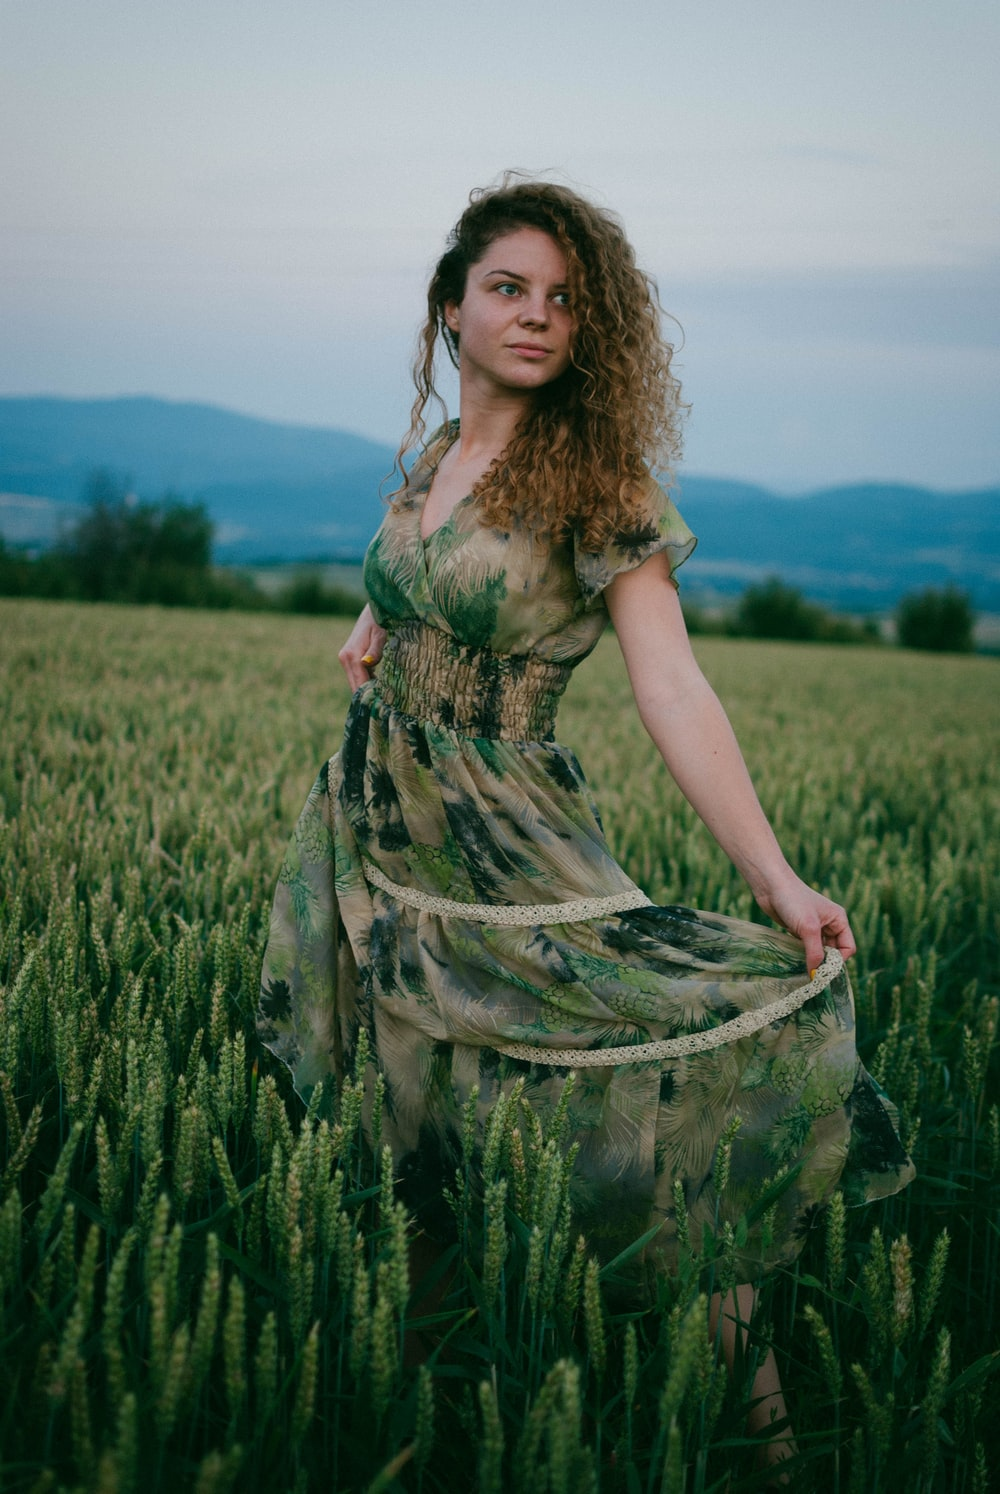 woman in green and brown floral dress standing on green grass field during daytime